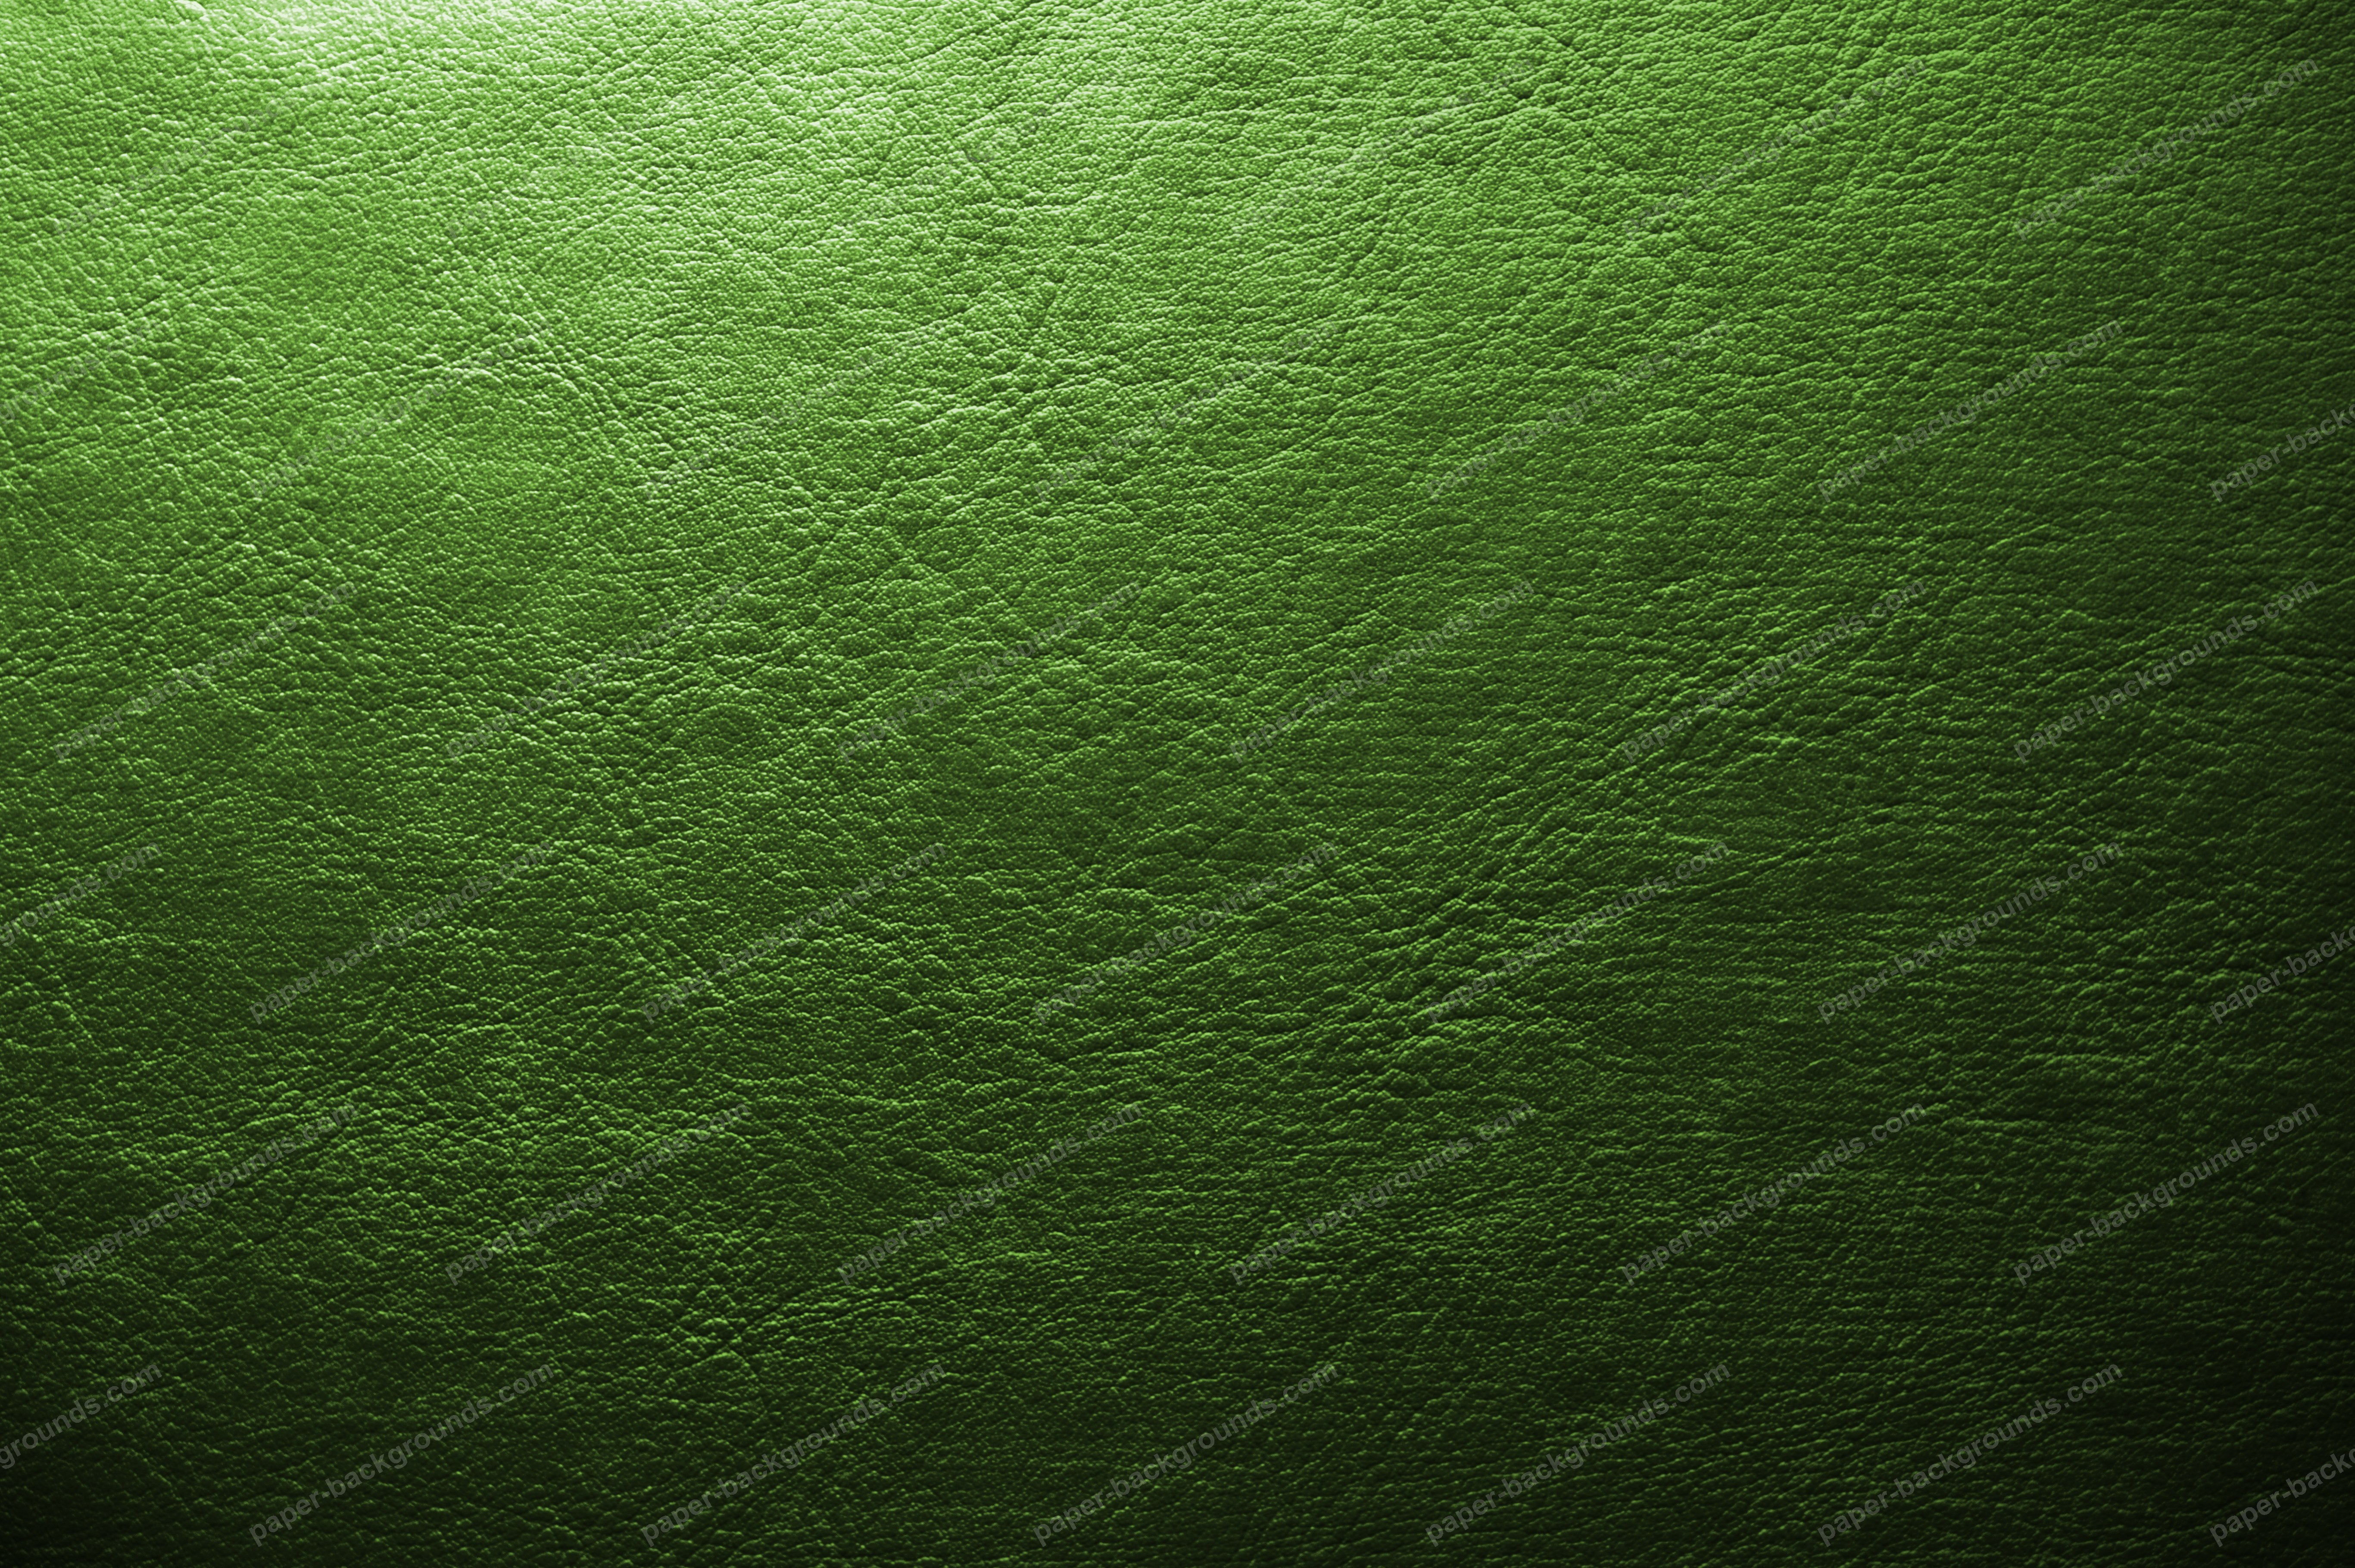 green texture wallpaper from - photo #17